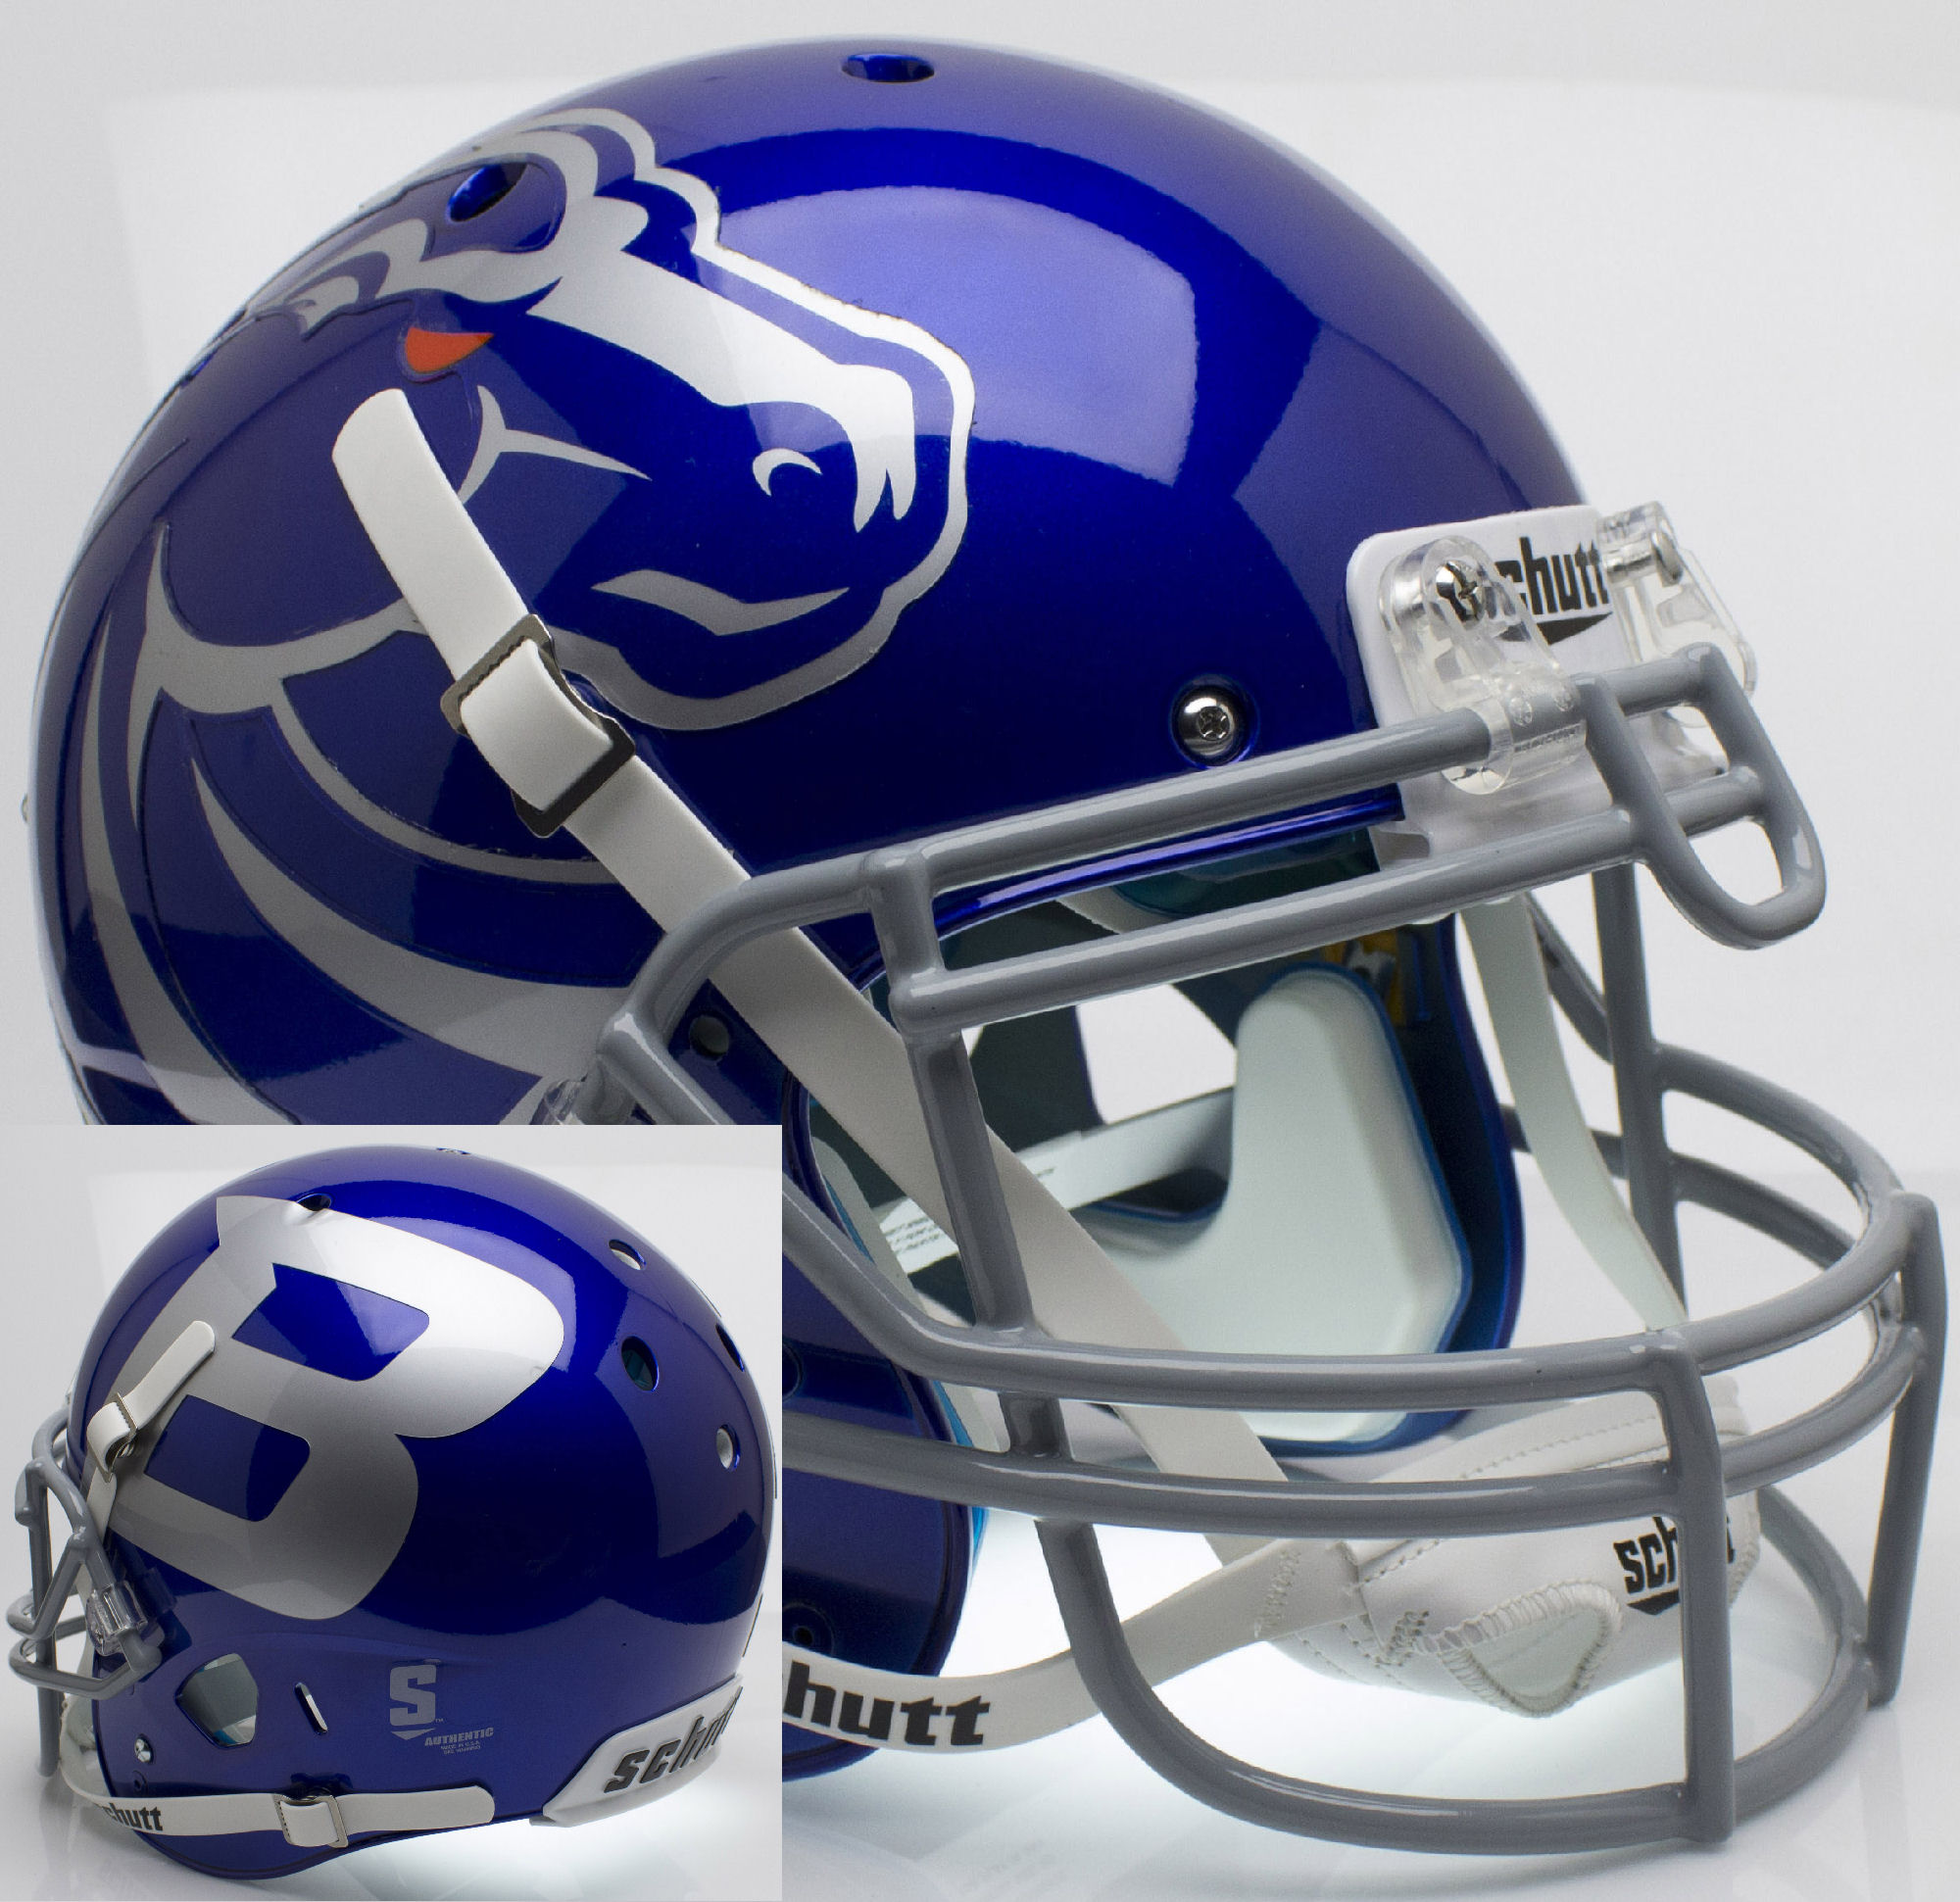 Boise State Broncos Authentic College XP Football Helmet Schutt <B>Blue</B>